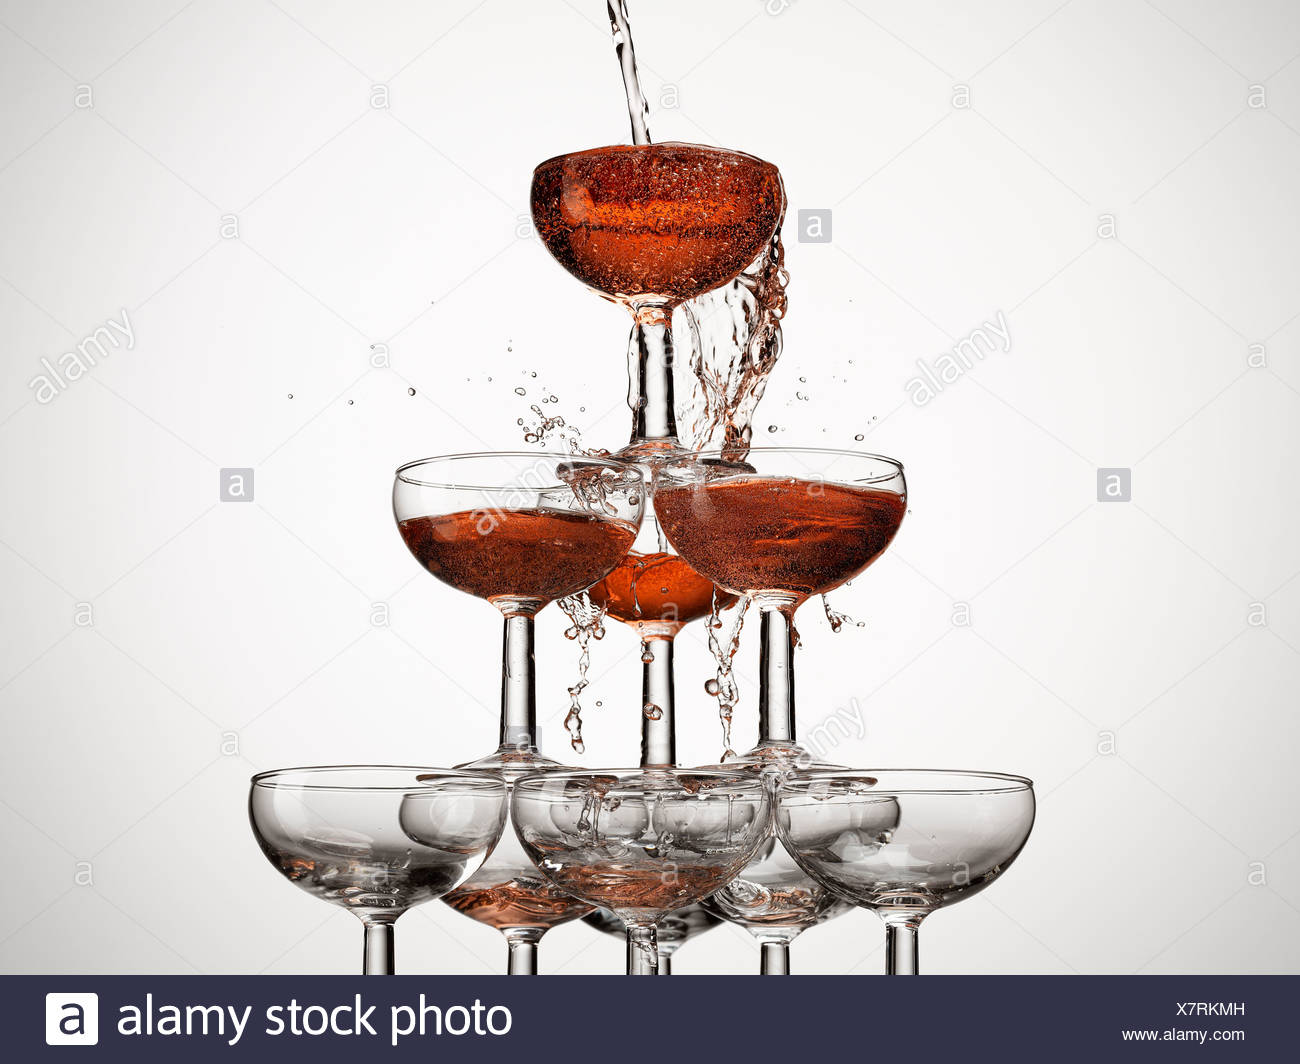 abundance,anticipation,aspiration,beginnings,bubble,celebration,champagne glass,color image,concept,excess,filling,food and - Stock Image